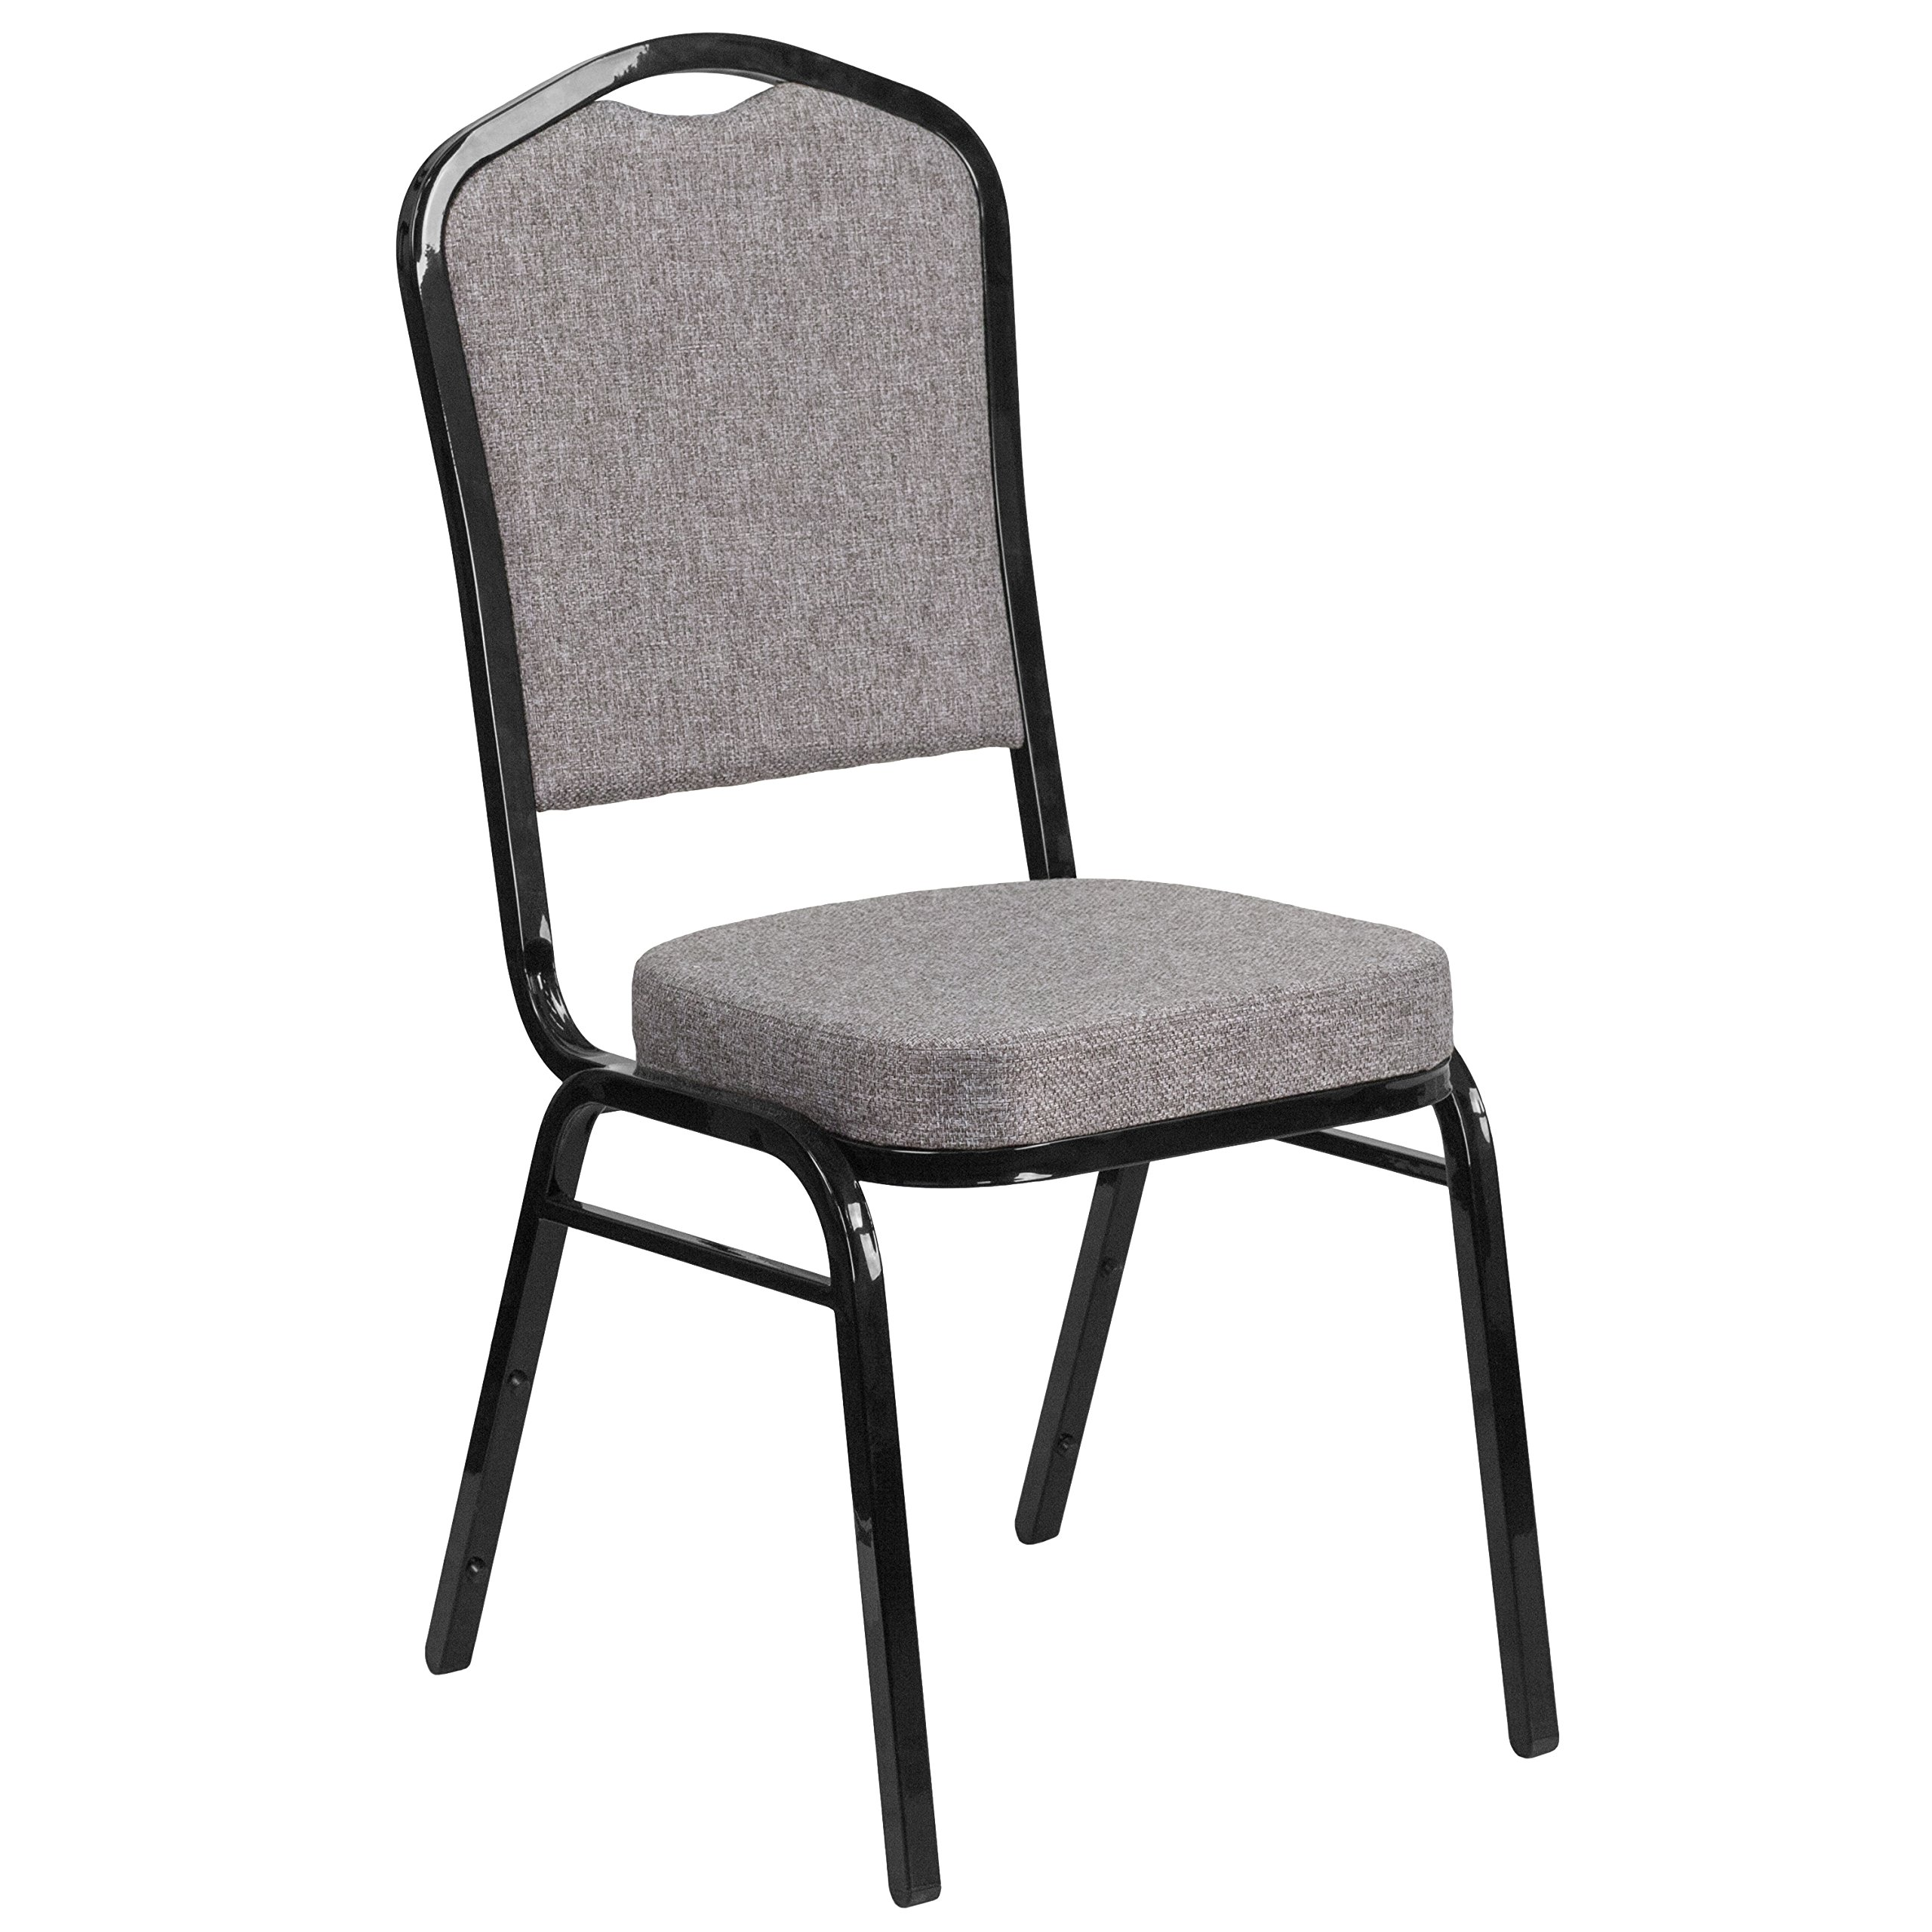 Flash Furniture HERCULES Series Crown Back Stacking Banquet Chair in Gray Fabric - Black Frame